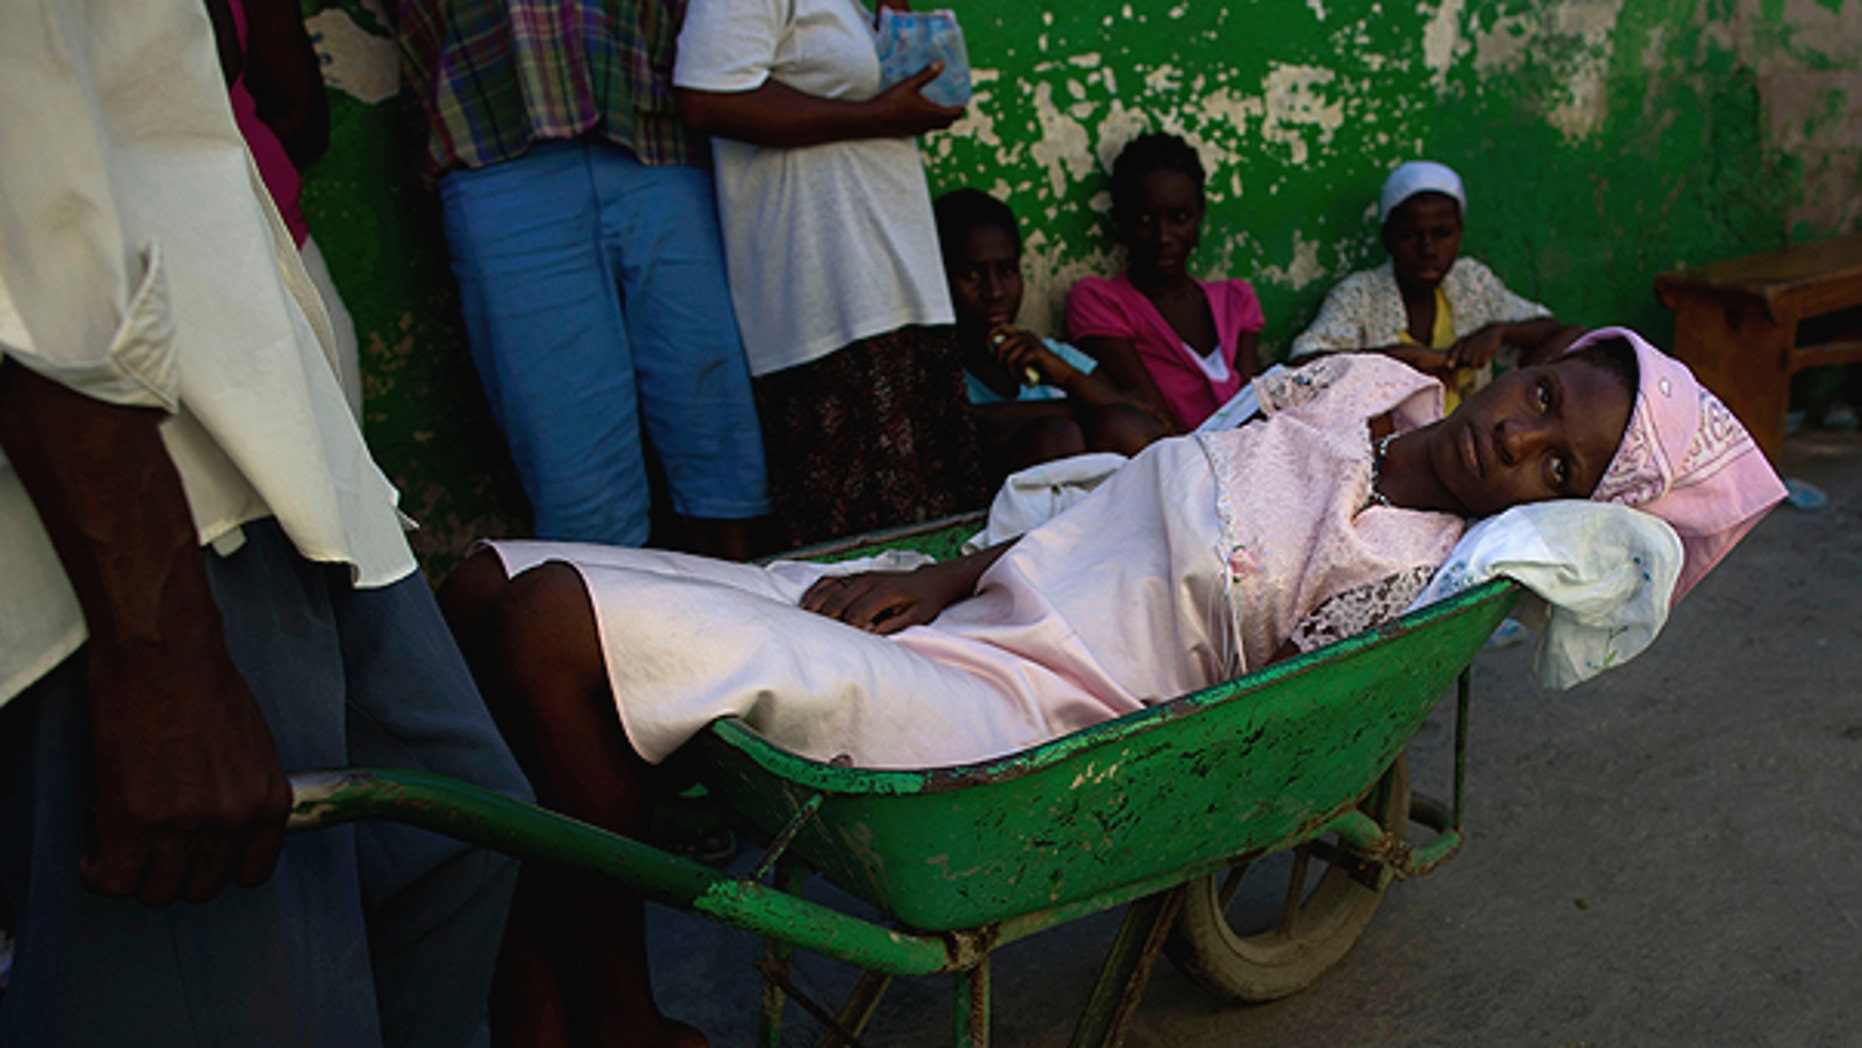 Nov. 17: A woman suffering cholera symptoms is pushed in a wheelbarrow to St. Catherine hospital, run by Doctors Without Borders, in the slum of Cite Soleil in Port-au-Prince, Haiti.